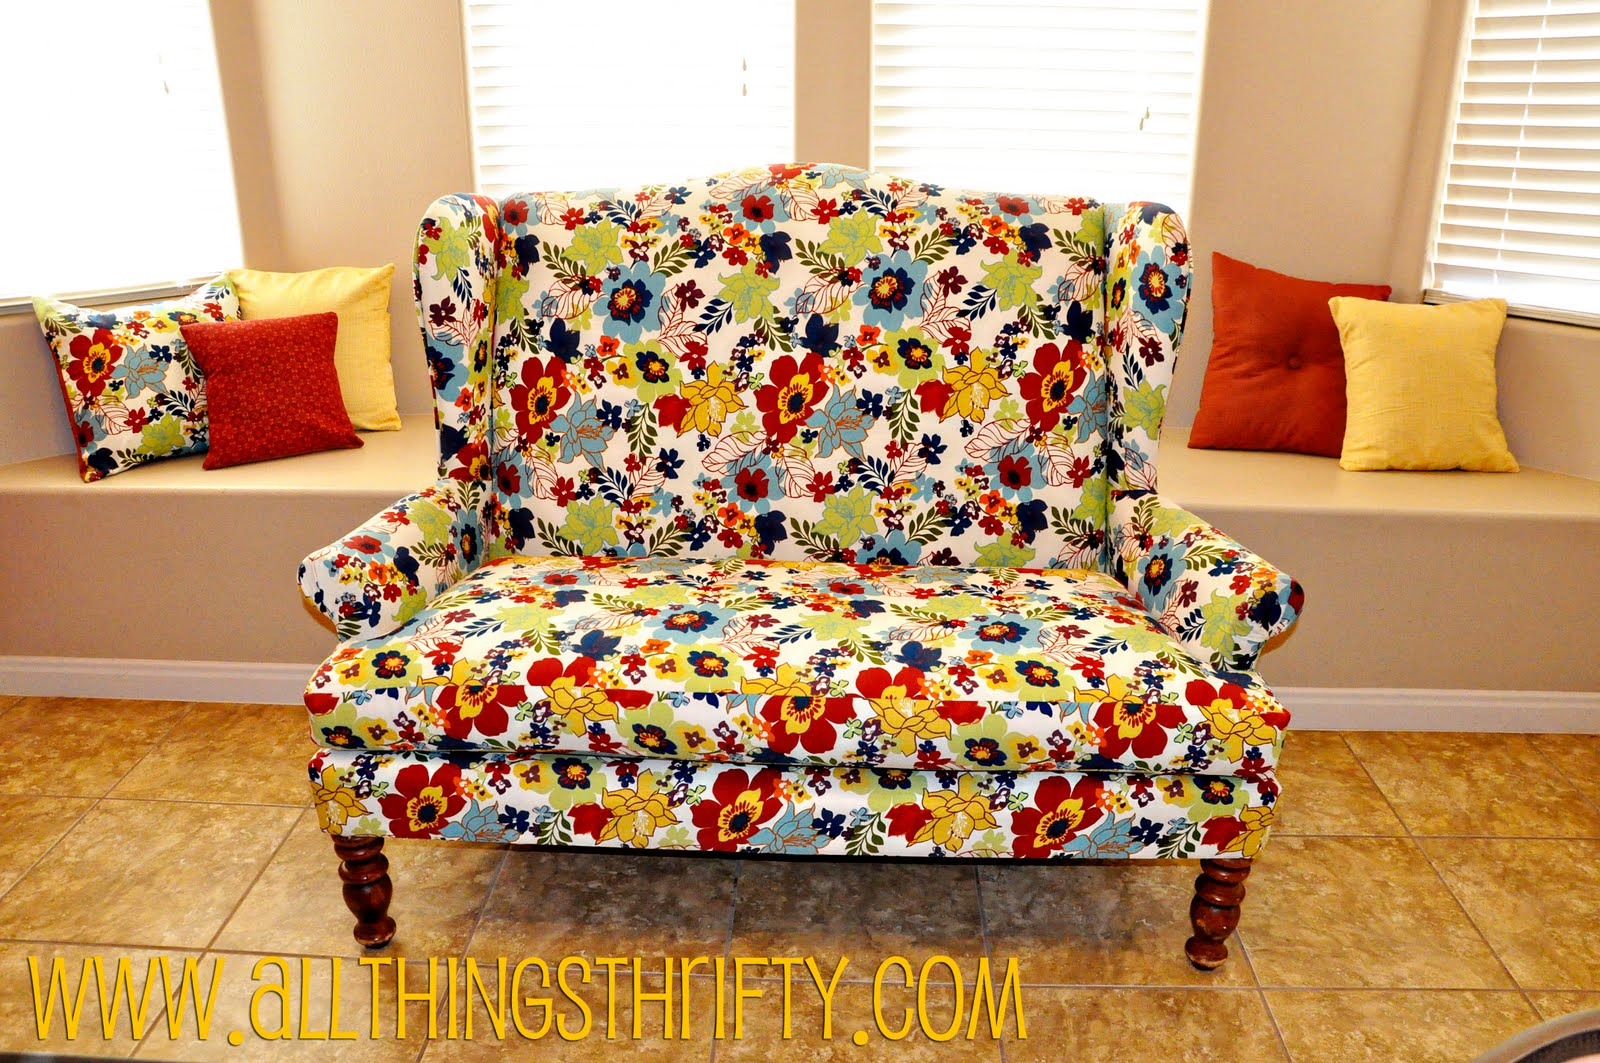 How Much Fabric Do I Need To Recover A Sofa 10 Foot Long Table Mary Jane Confetti At Joanns